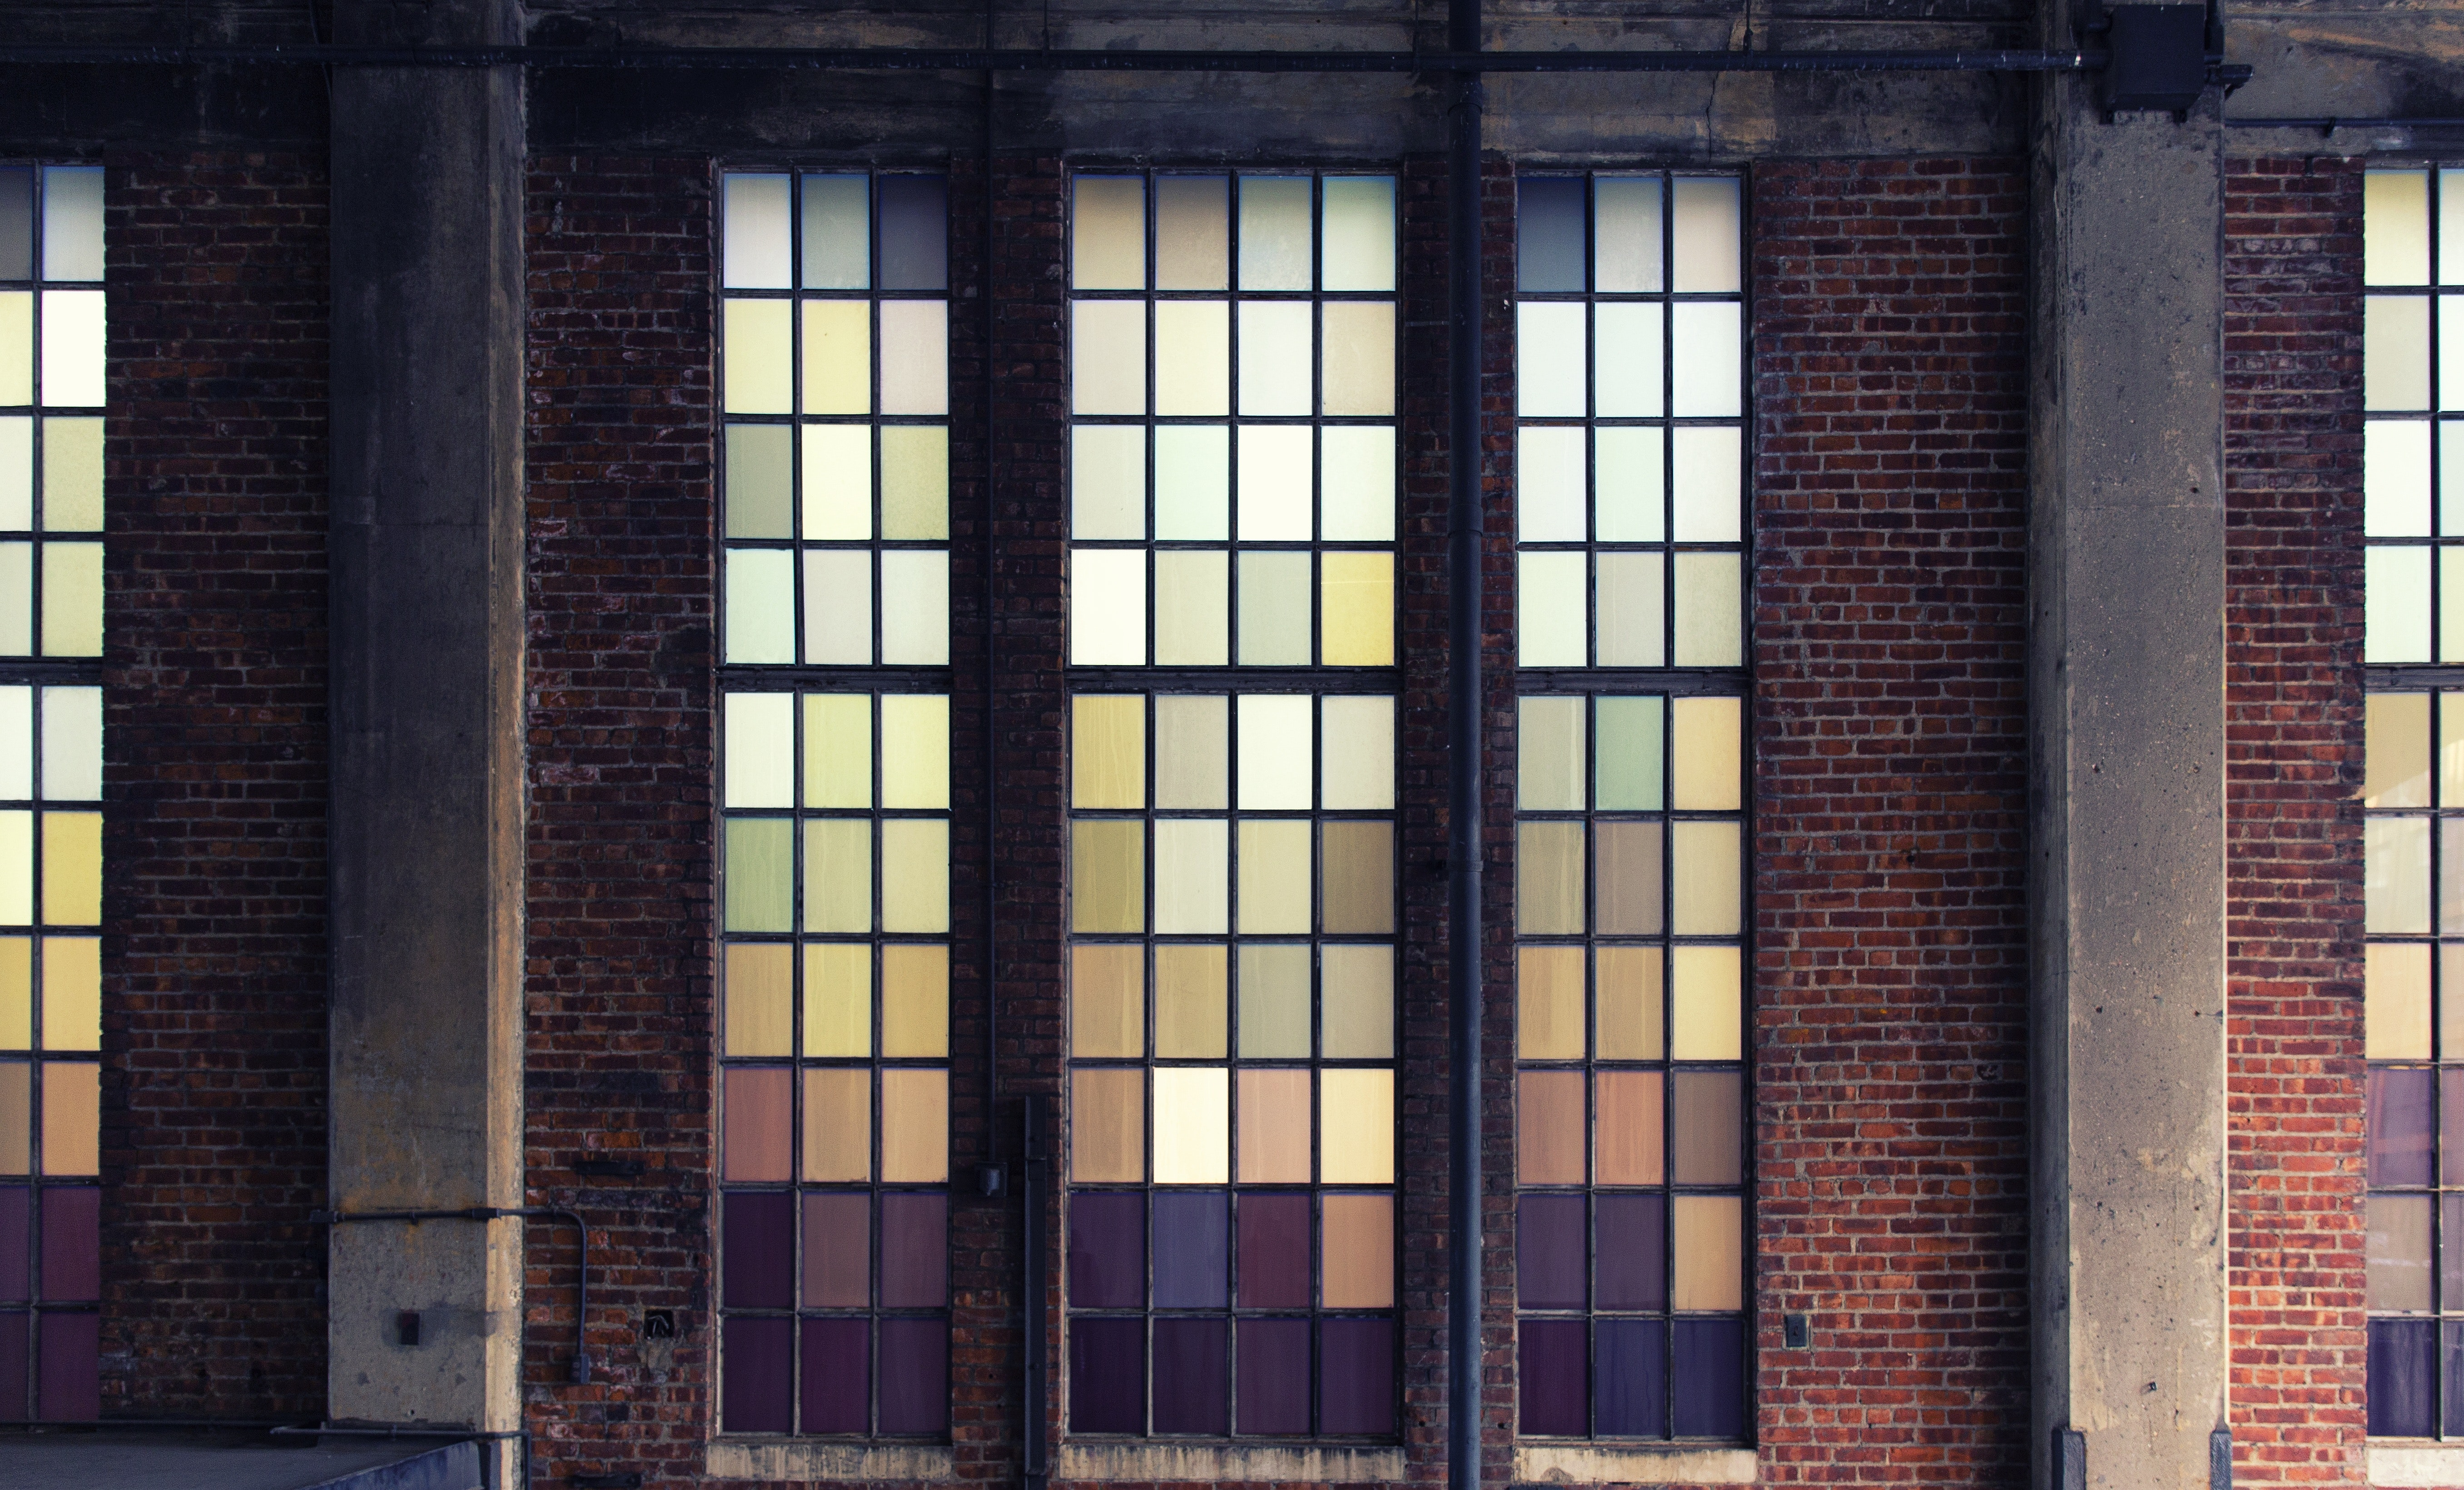 Green Yellow and Pink Stained Glass, Aged, Old building, Weathered, Vintage, HQ Photo